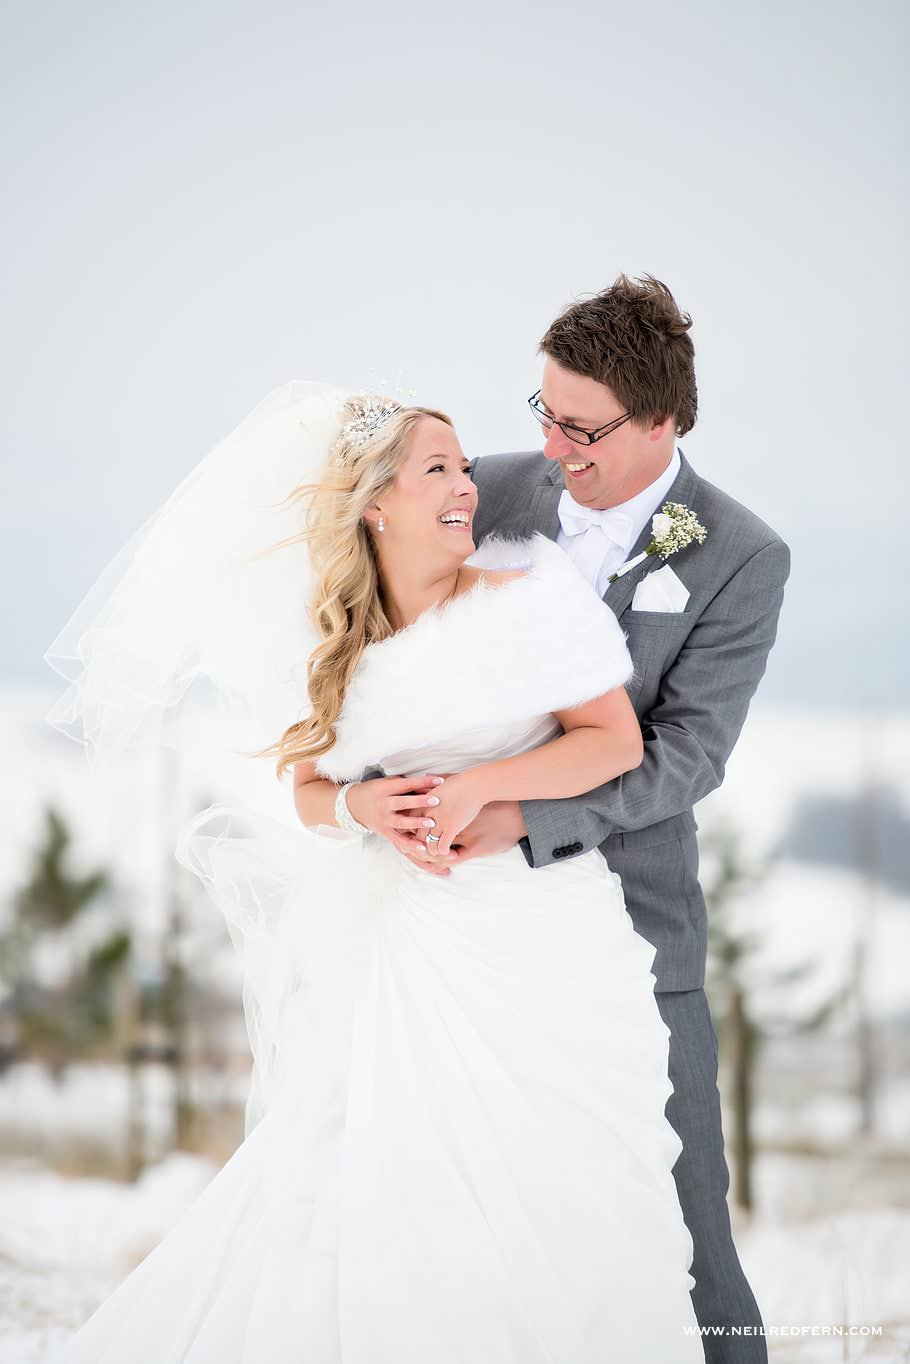 Wedding photographs in the snow 08